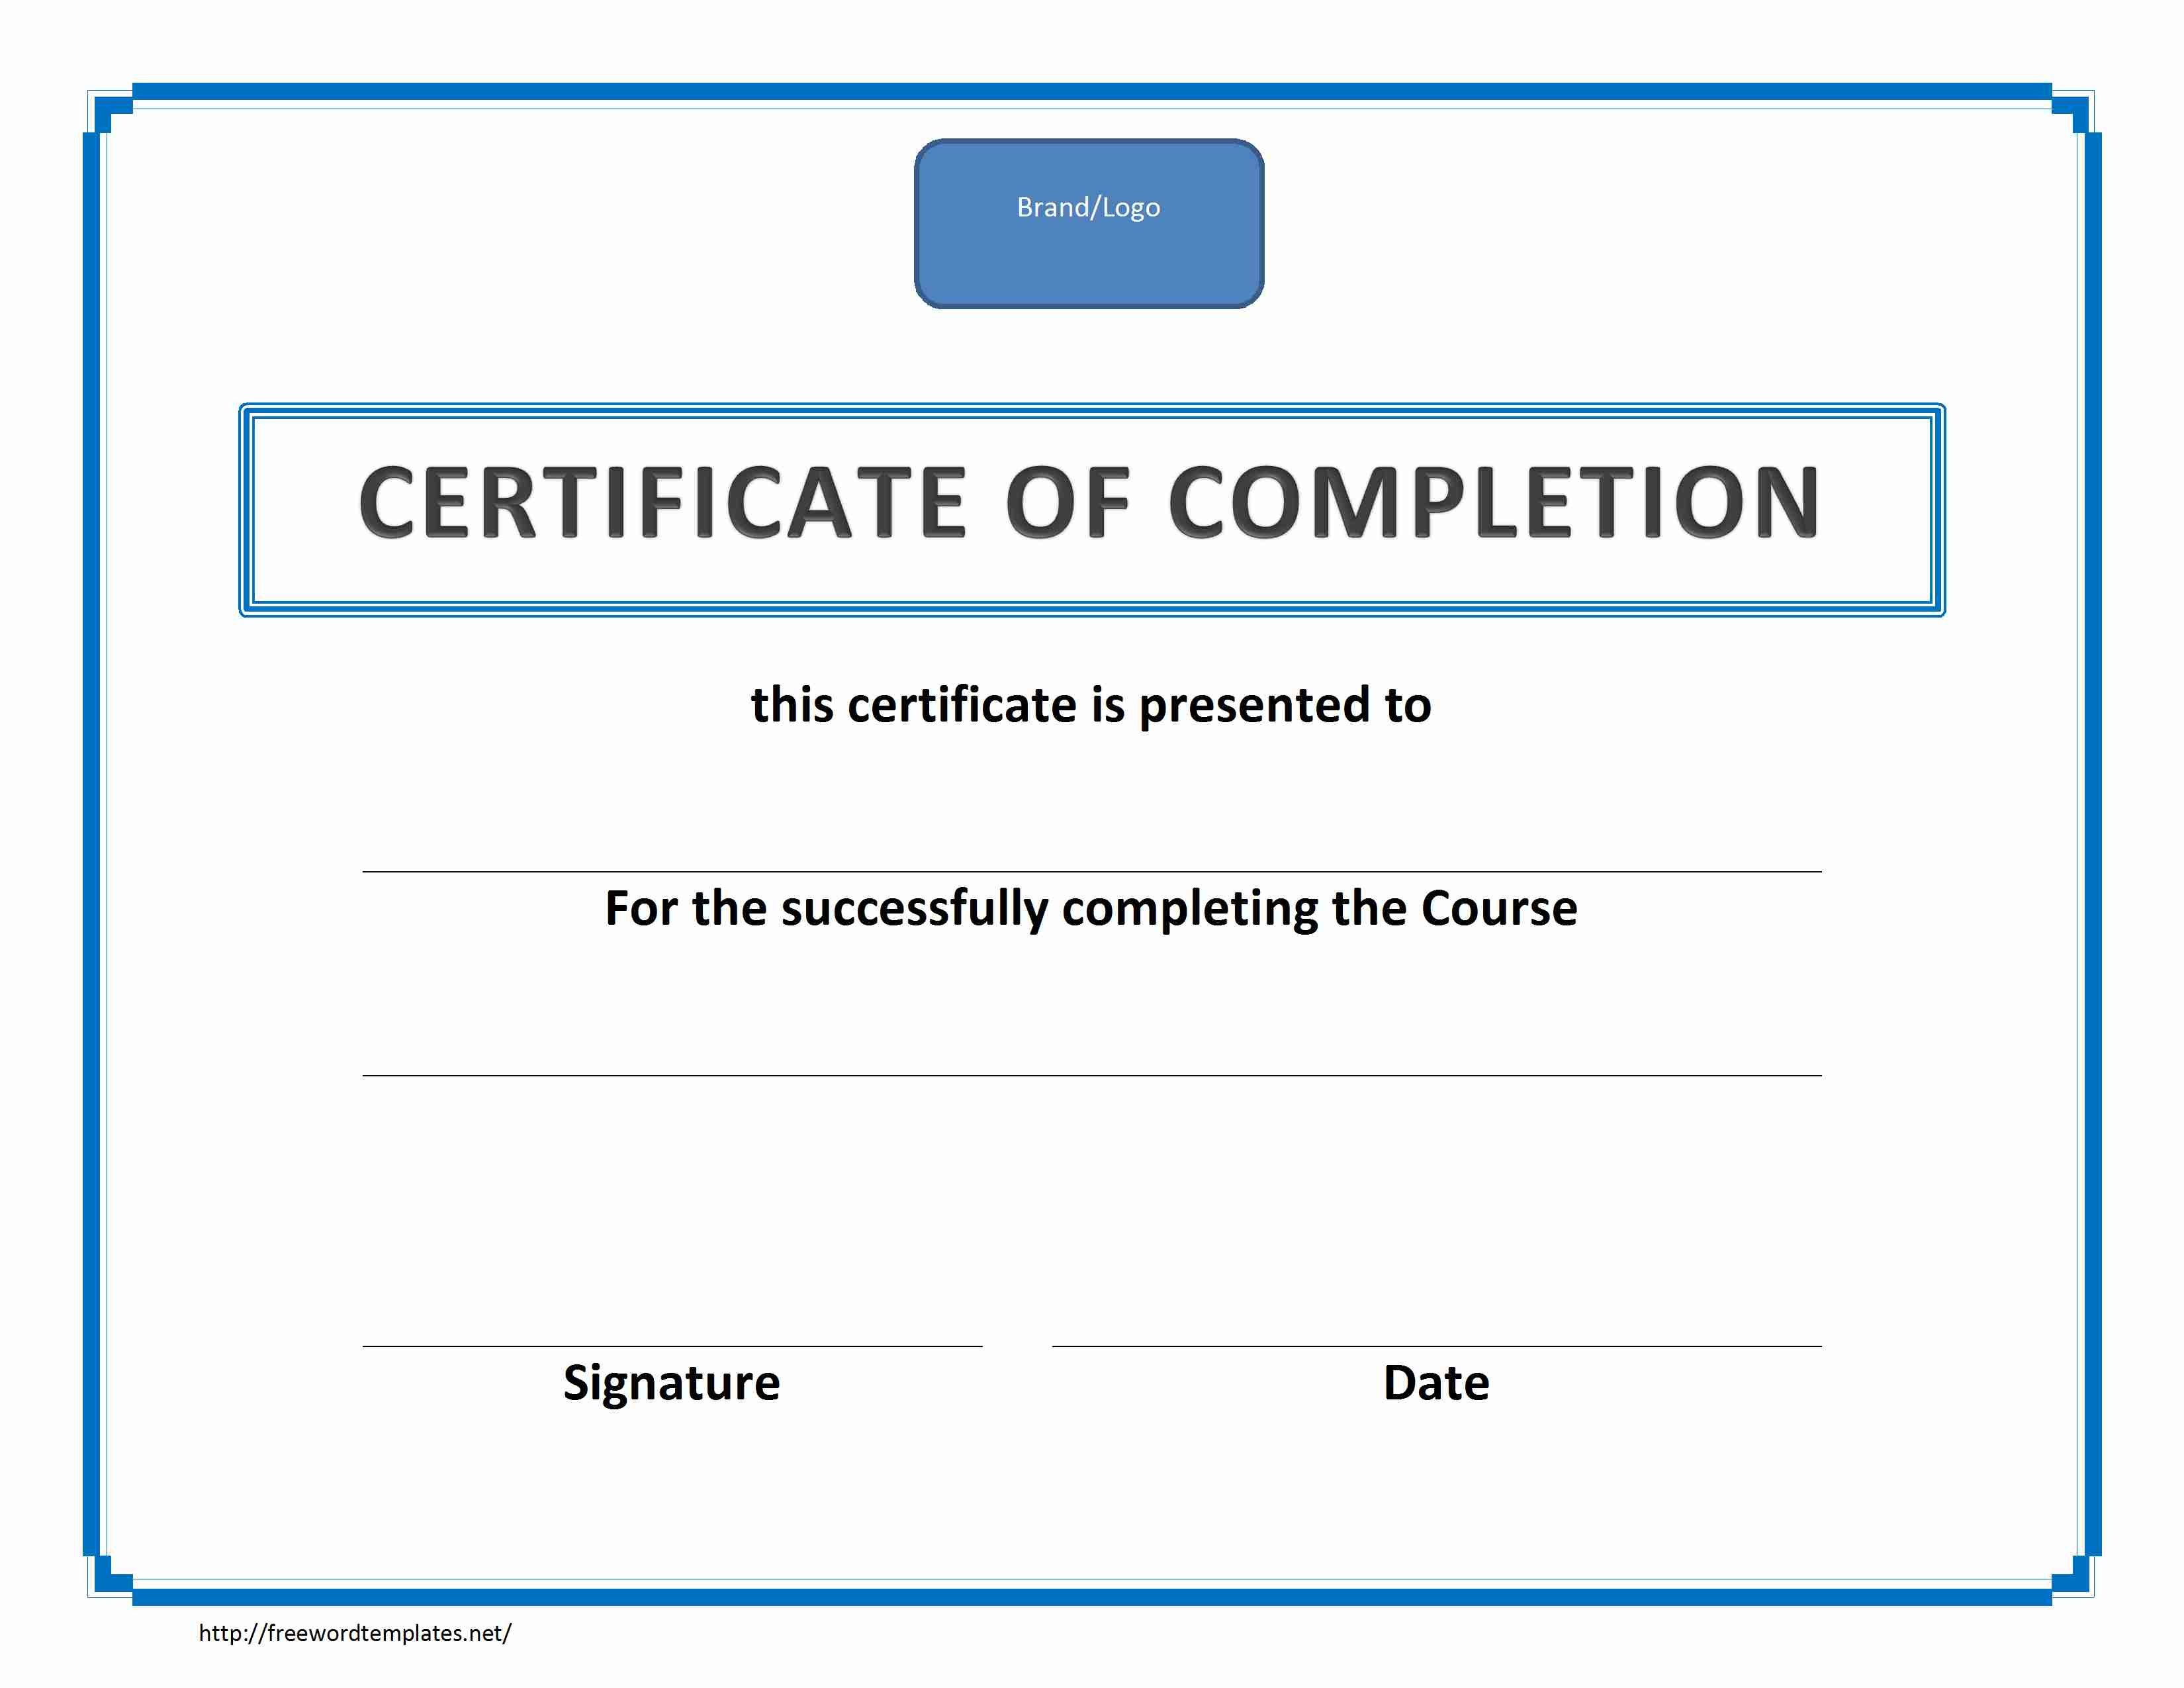 Certificate Template Microsoft Word   – Elsik Blue Cetane With Regard To Free Certificate Templates For Word 2007